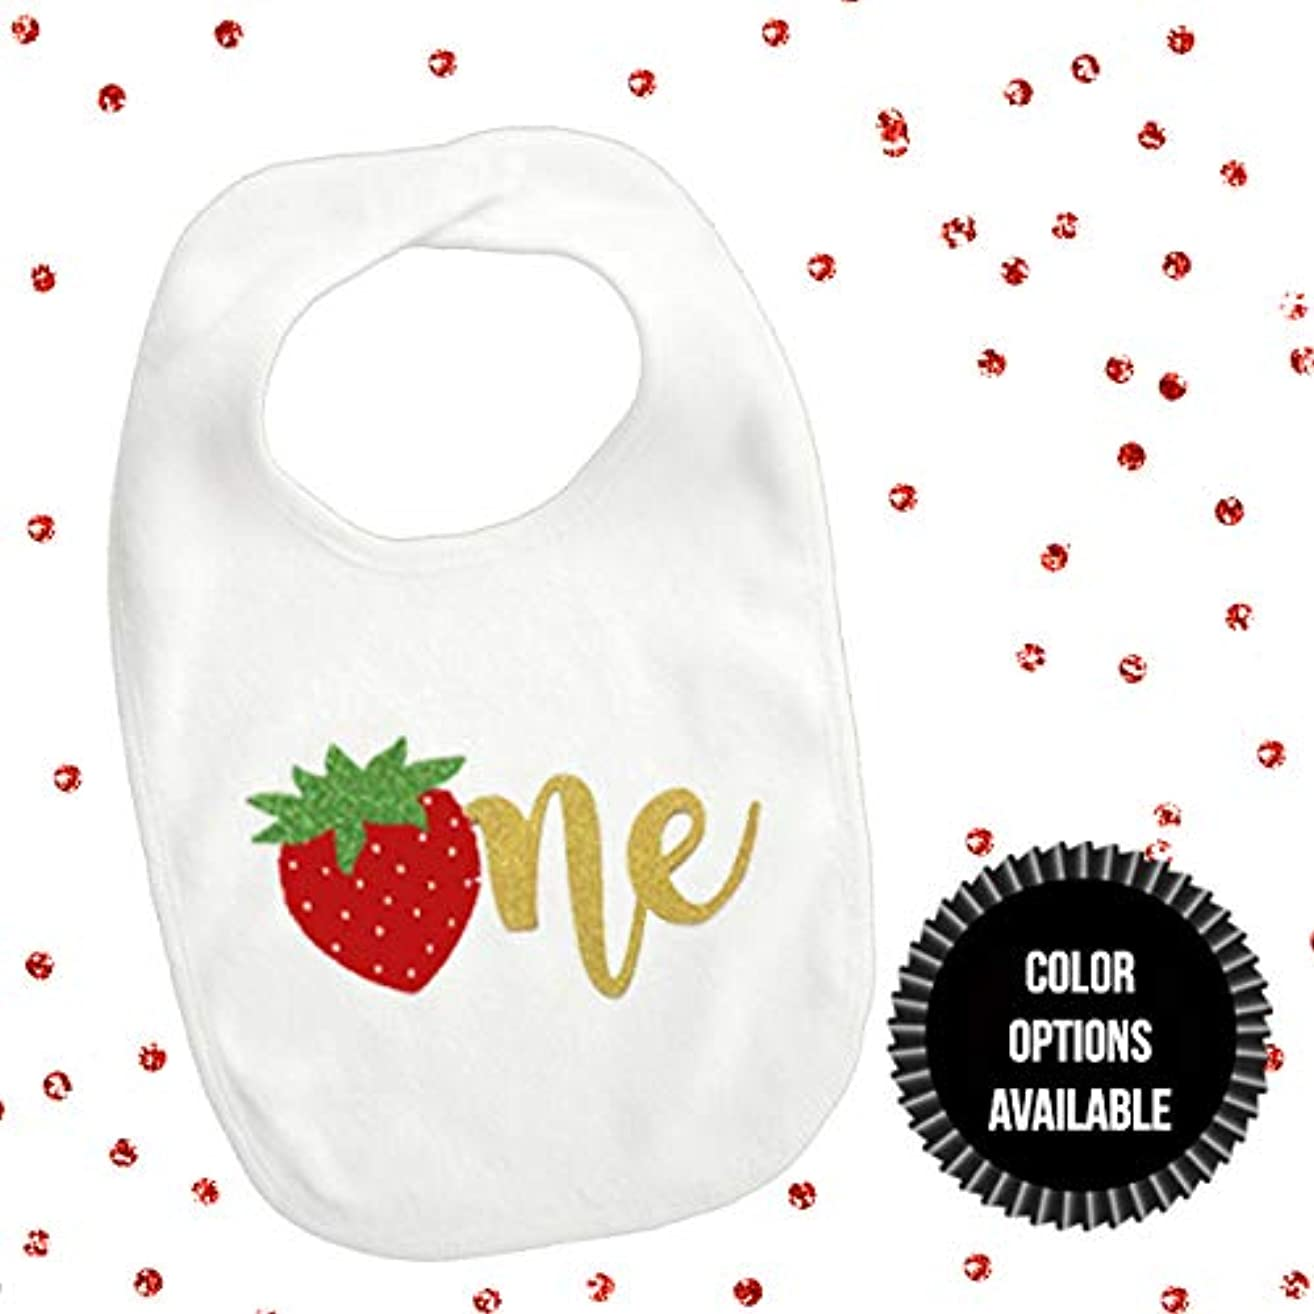 1 piece strawberry one bib toddler girl for first birthday summer fruit tutti fruity cake smash photo prop